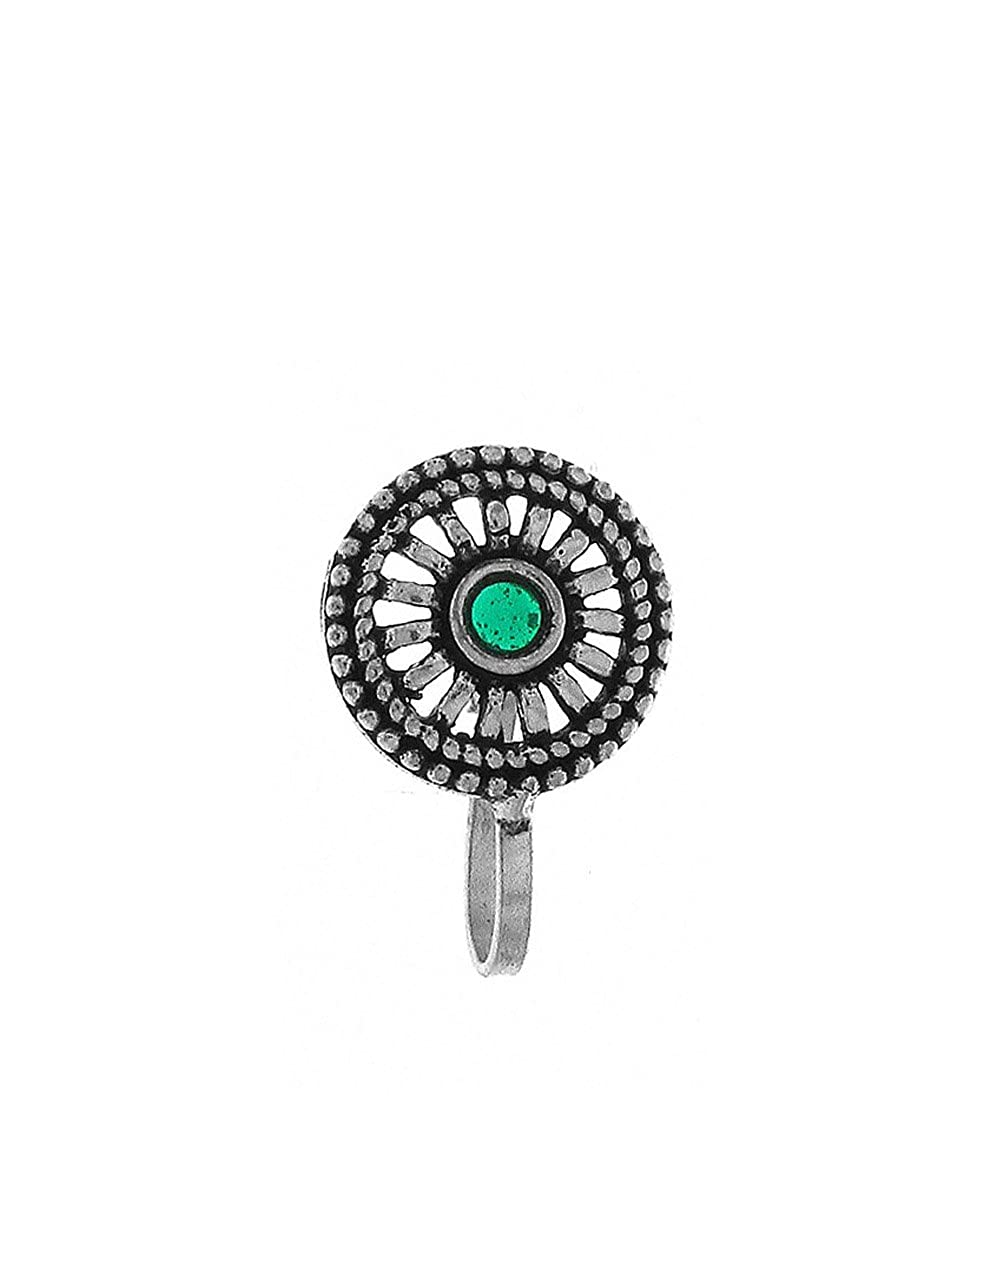 50b7be0a861 Amazon.com  Anuradha Art Silver Finish Styled With Round Shape Wonderful  Designer Clip-On Nose Ring Pin For Women Girls  Jewelry